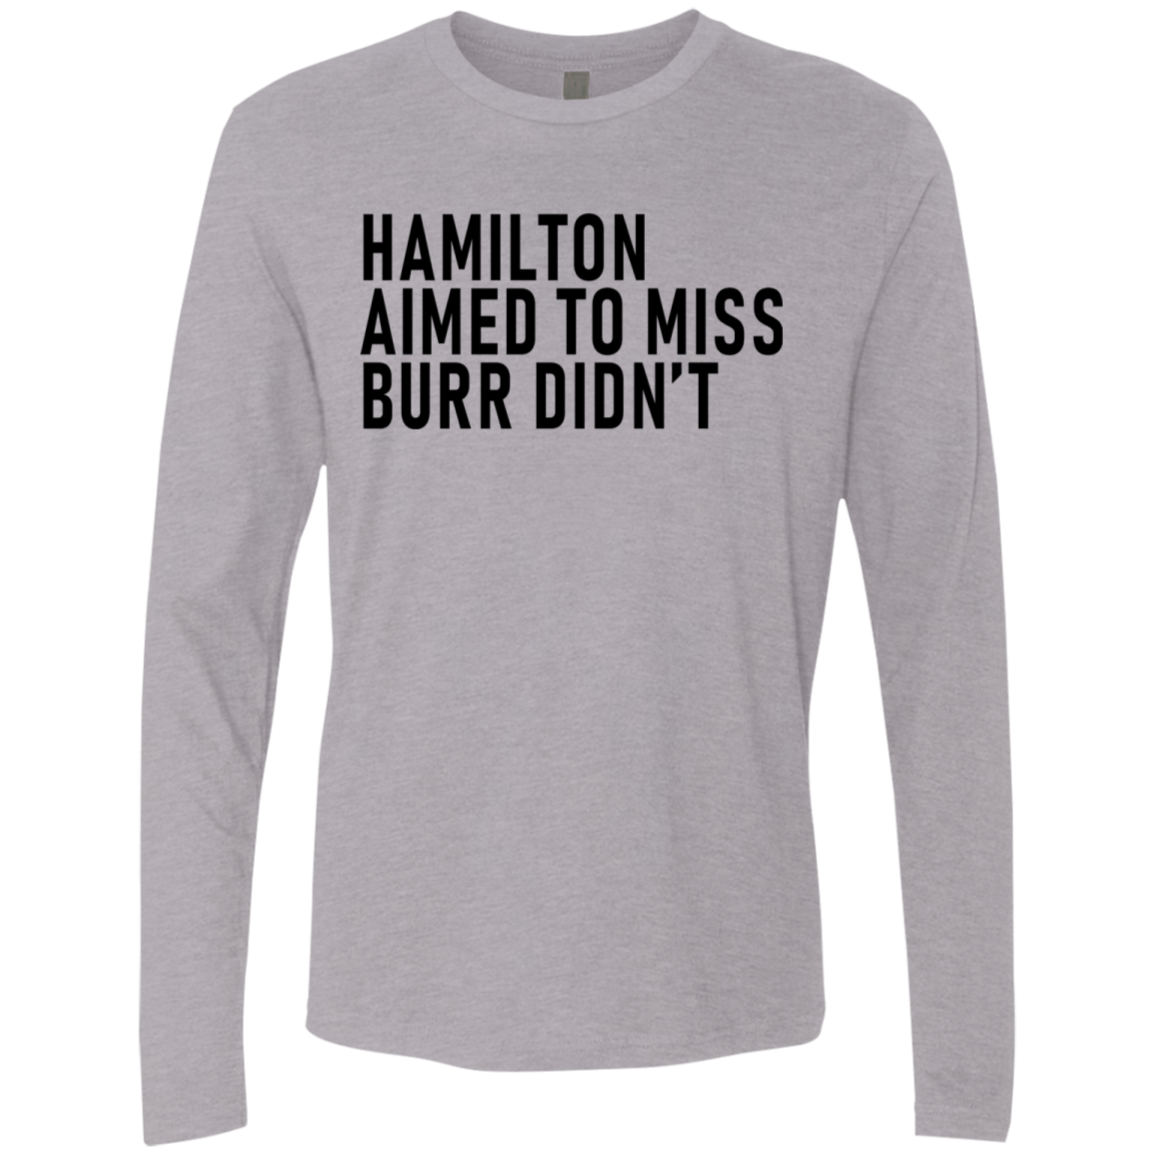 Hamilton Aimed To Miss Burr Didn't Men's Long Sleeve Tee